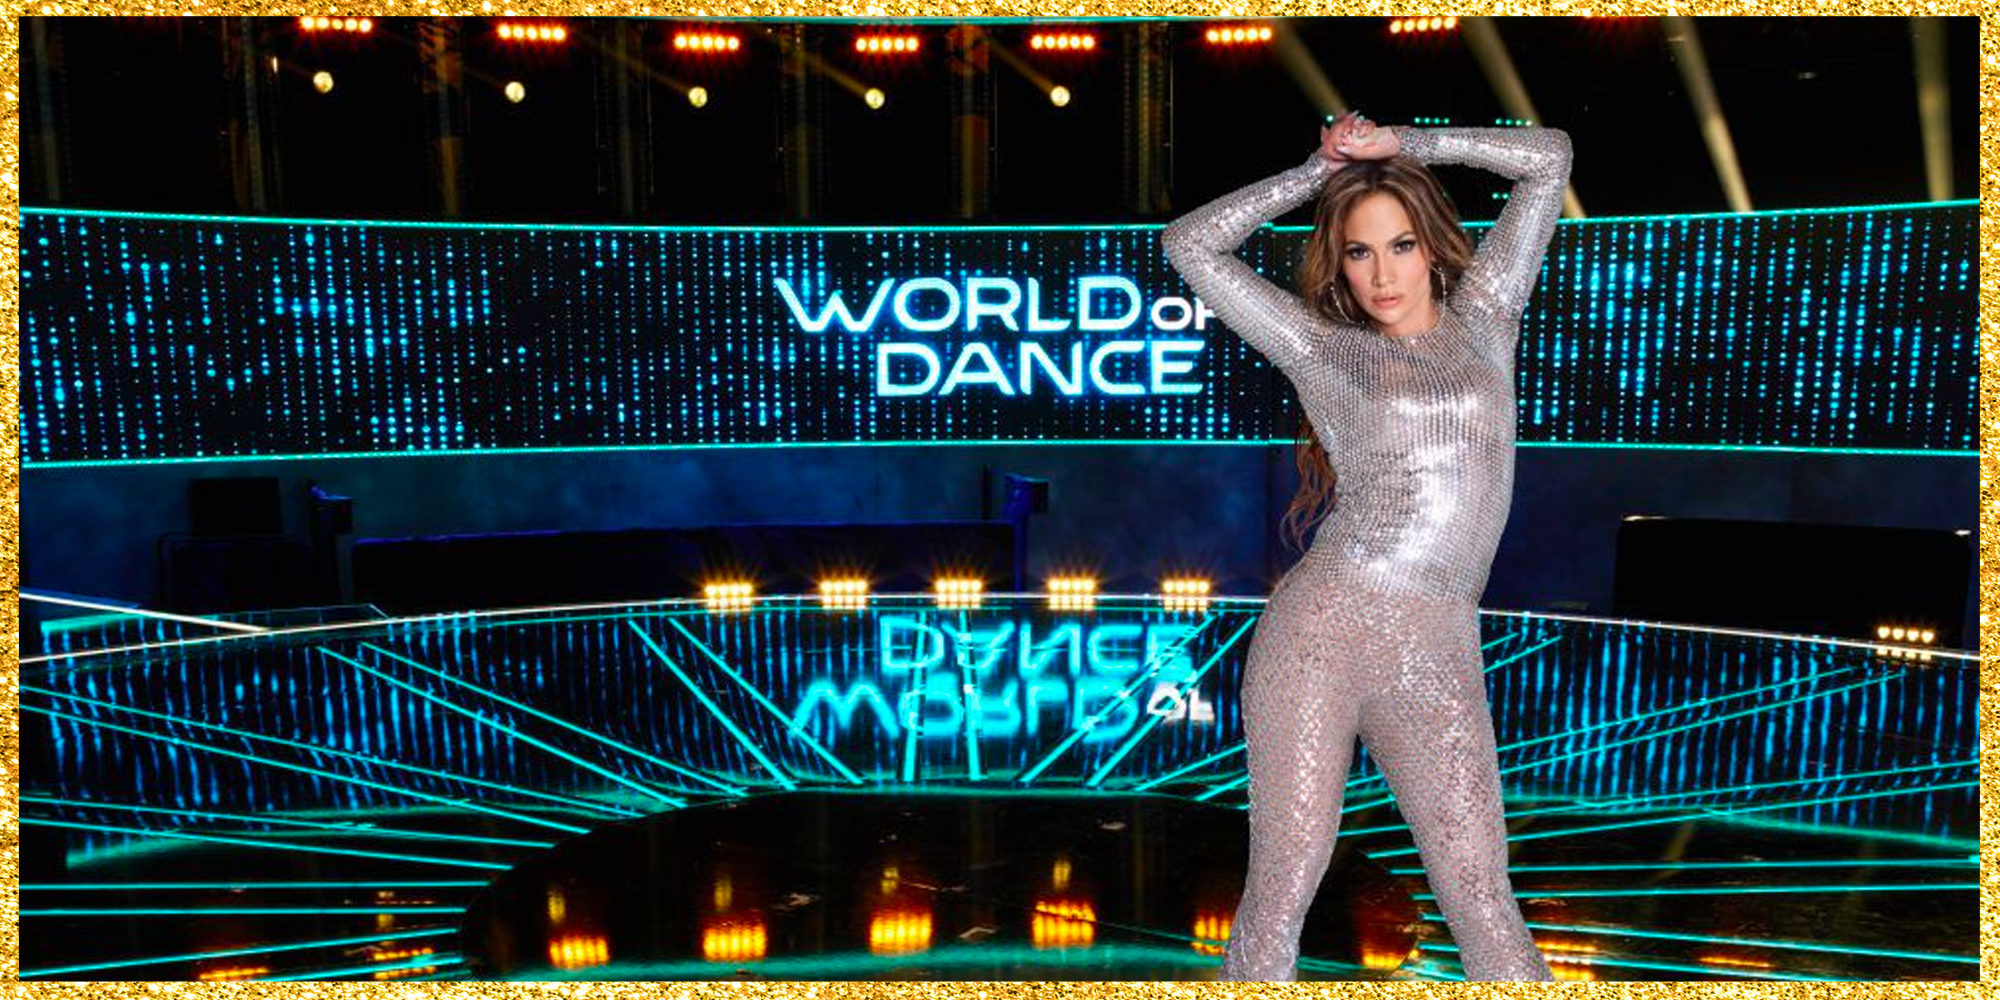 Jennifer Lopez's '90s In Living Color Audition Tape Proves She's the Ultimate World of Dance Judge